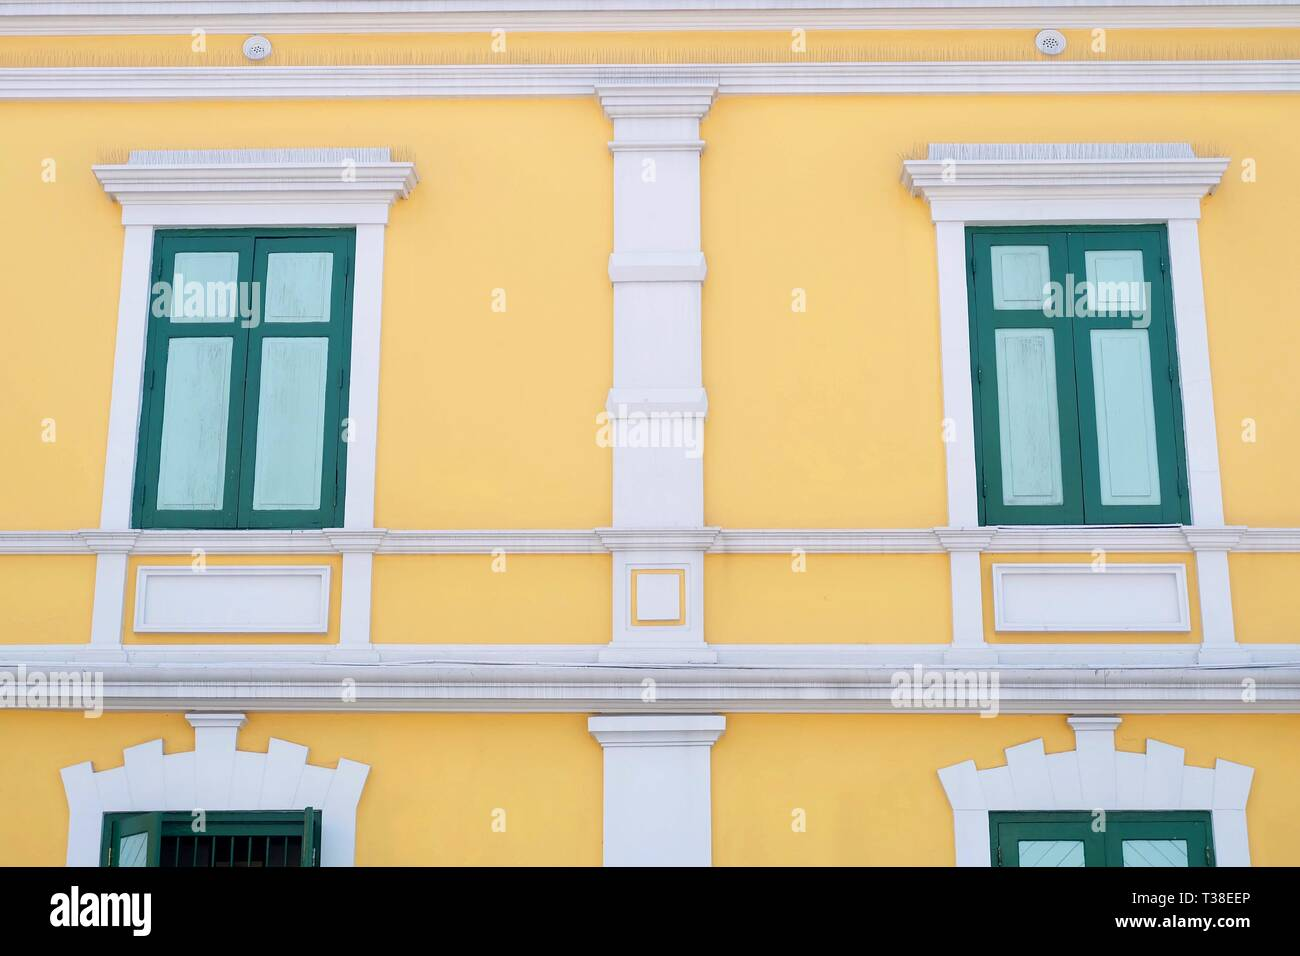 Yellow Building with Green Windows of The Ministry of Defence, The Ministry Controls and Manages The Royal Thai Armed Forces to Maintain National Secu - Stock Image